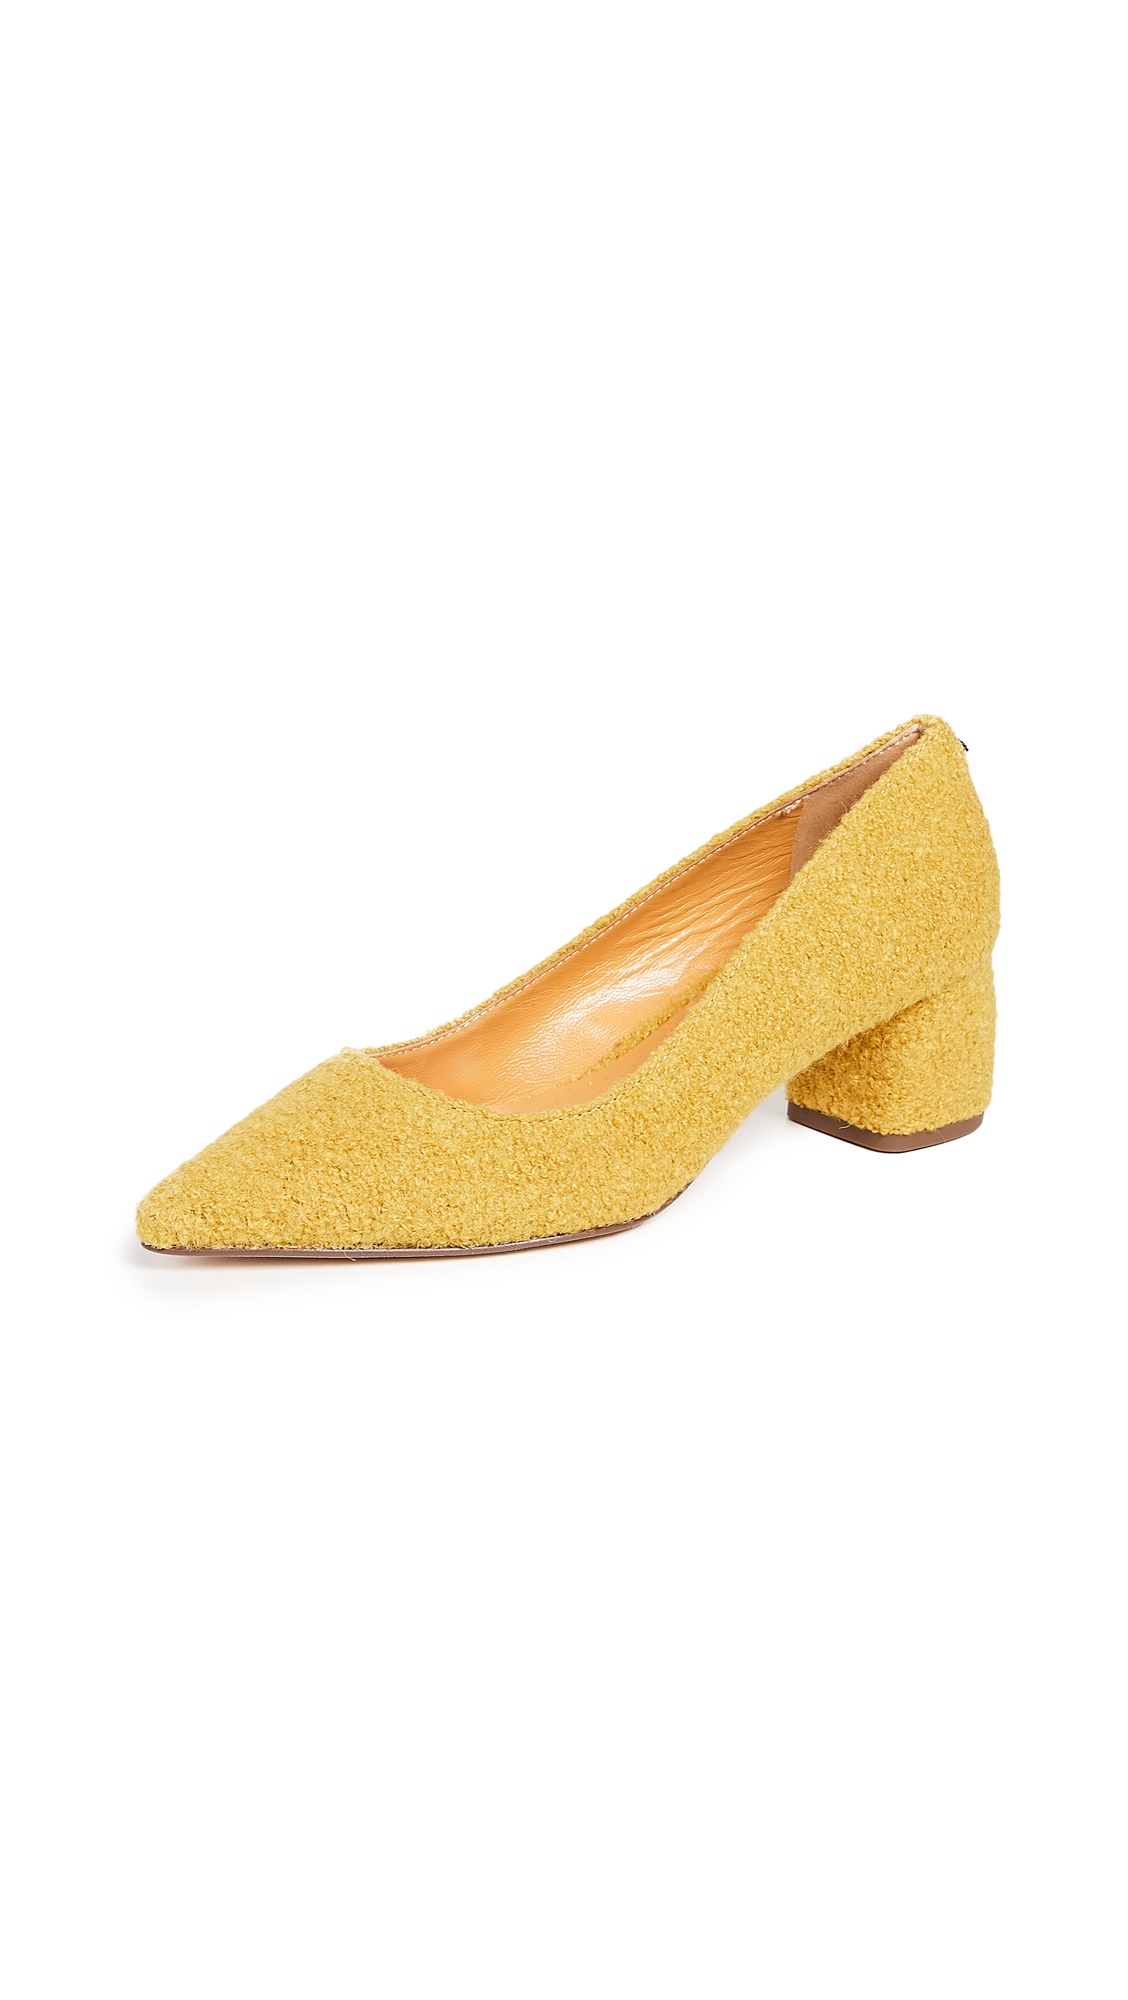 Kate Spade New York Madlyne Pumps - Mustard